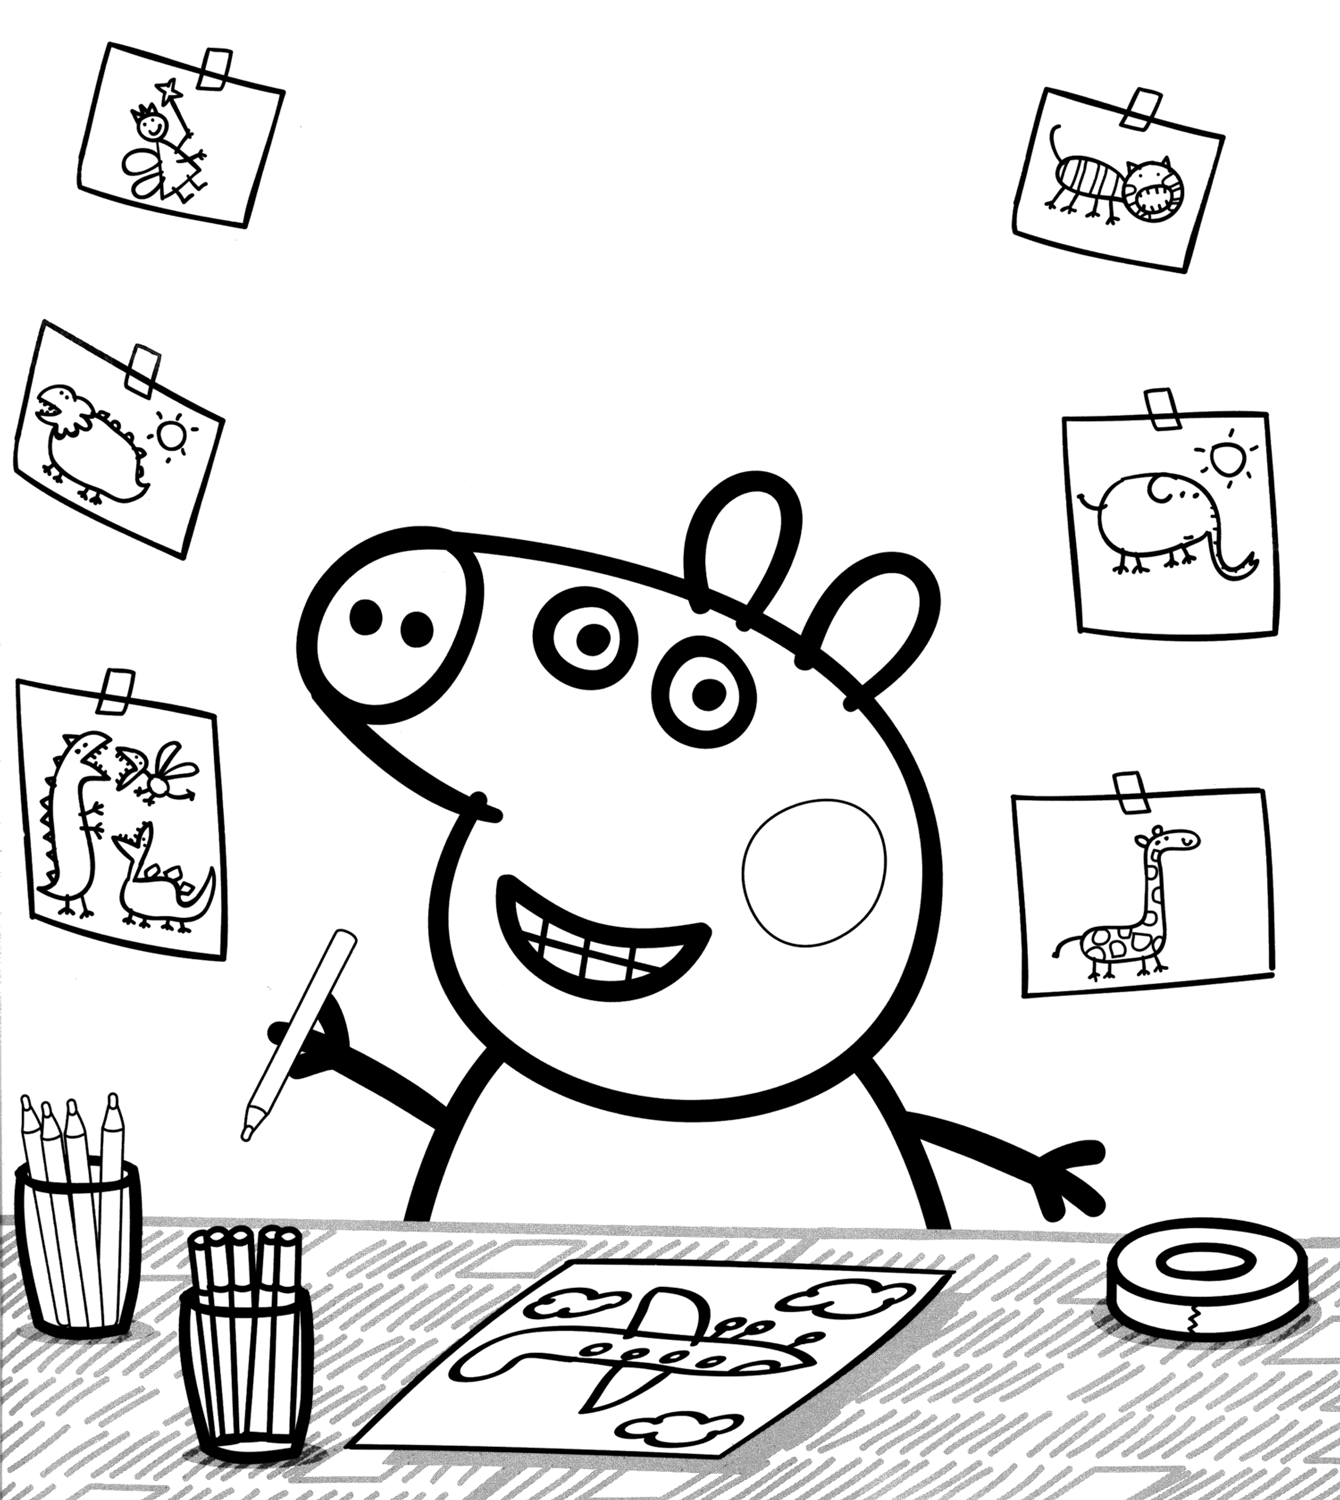 Peppa Pig sigla 009 as well desenhos para colorir Harley Quinn together with Malvorlage Bibi Blocksberg 16 together with  also canary likewise  besides bowl of rice likewise peppa pig 07 together with  furthermore E8c6dMeTE together with coloriage peppa pig 10265. on peppa pig coloring pages